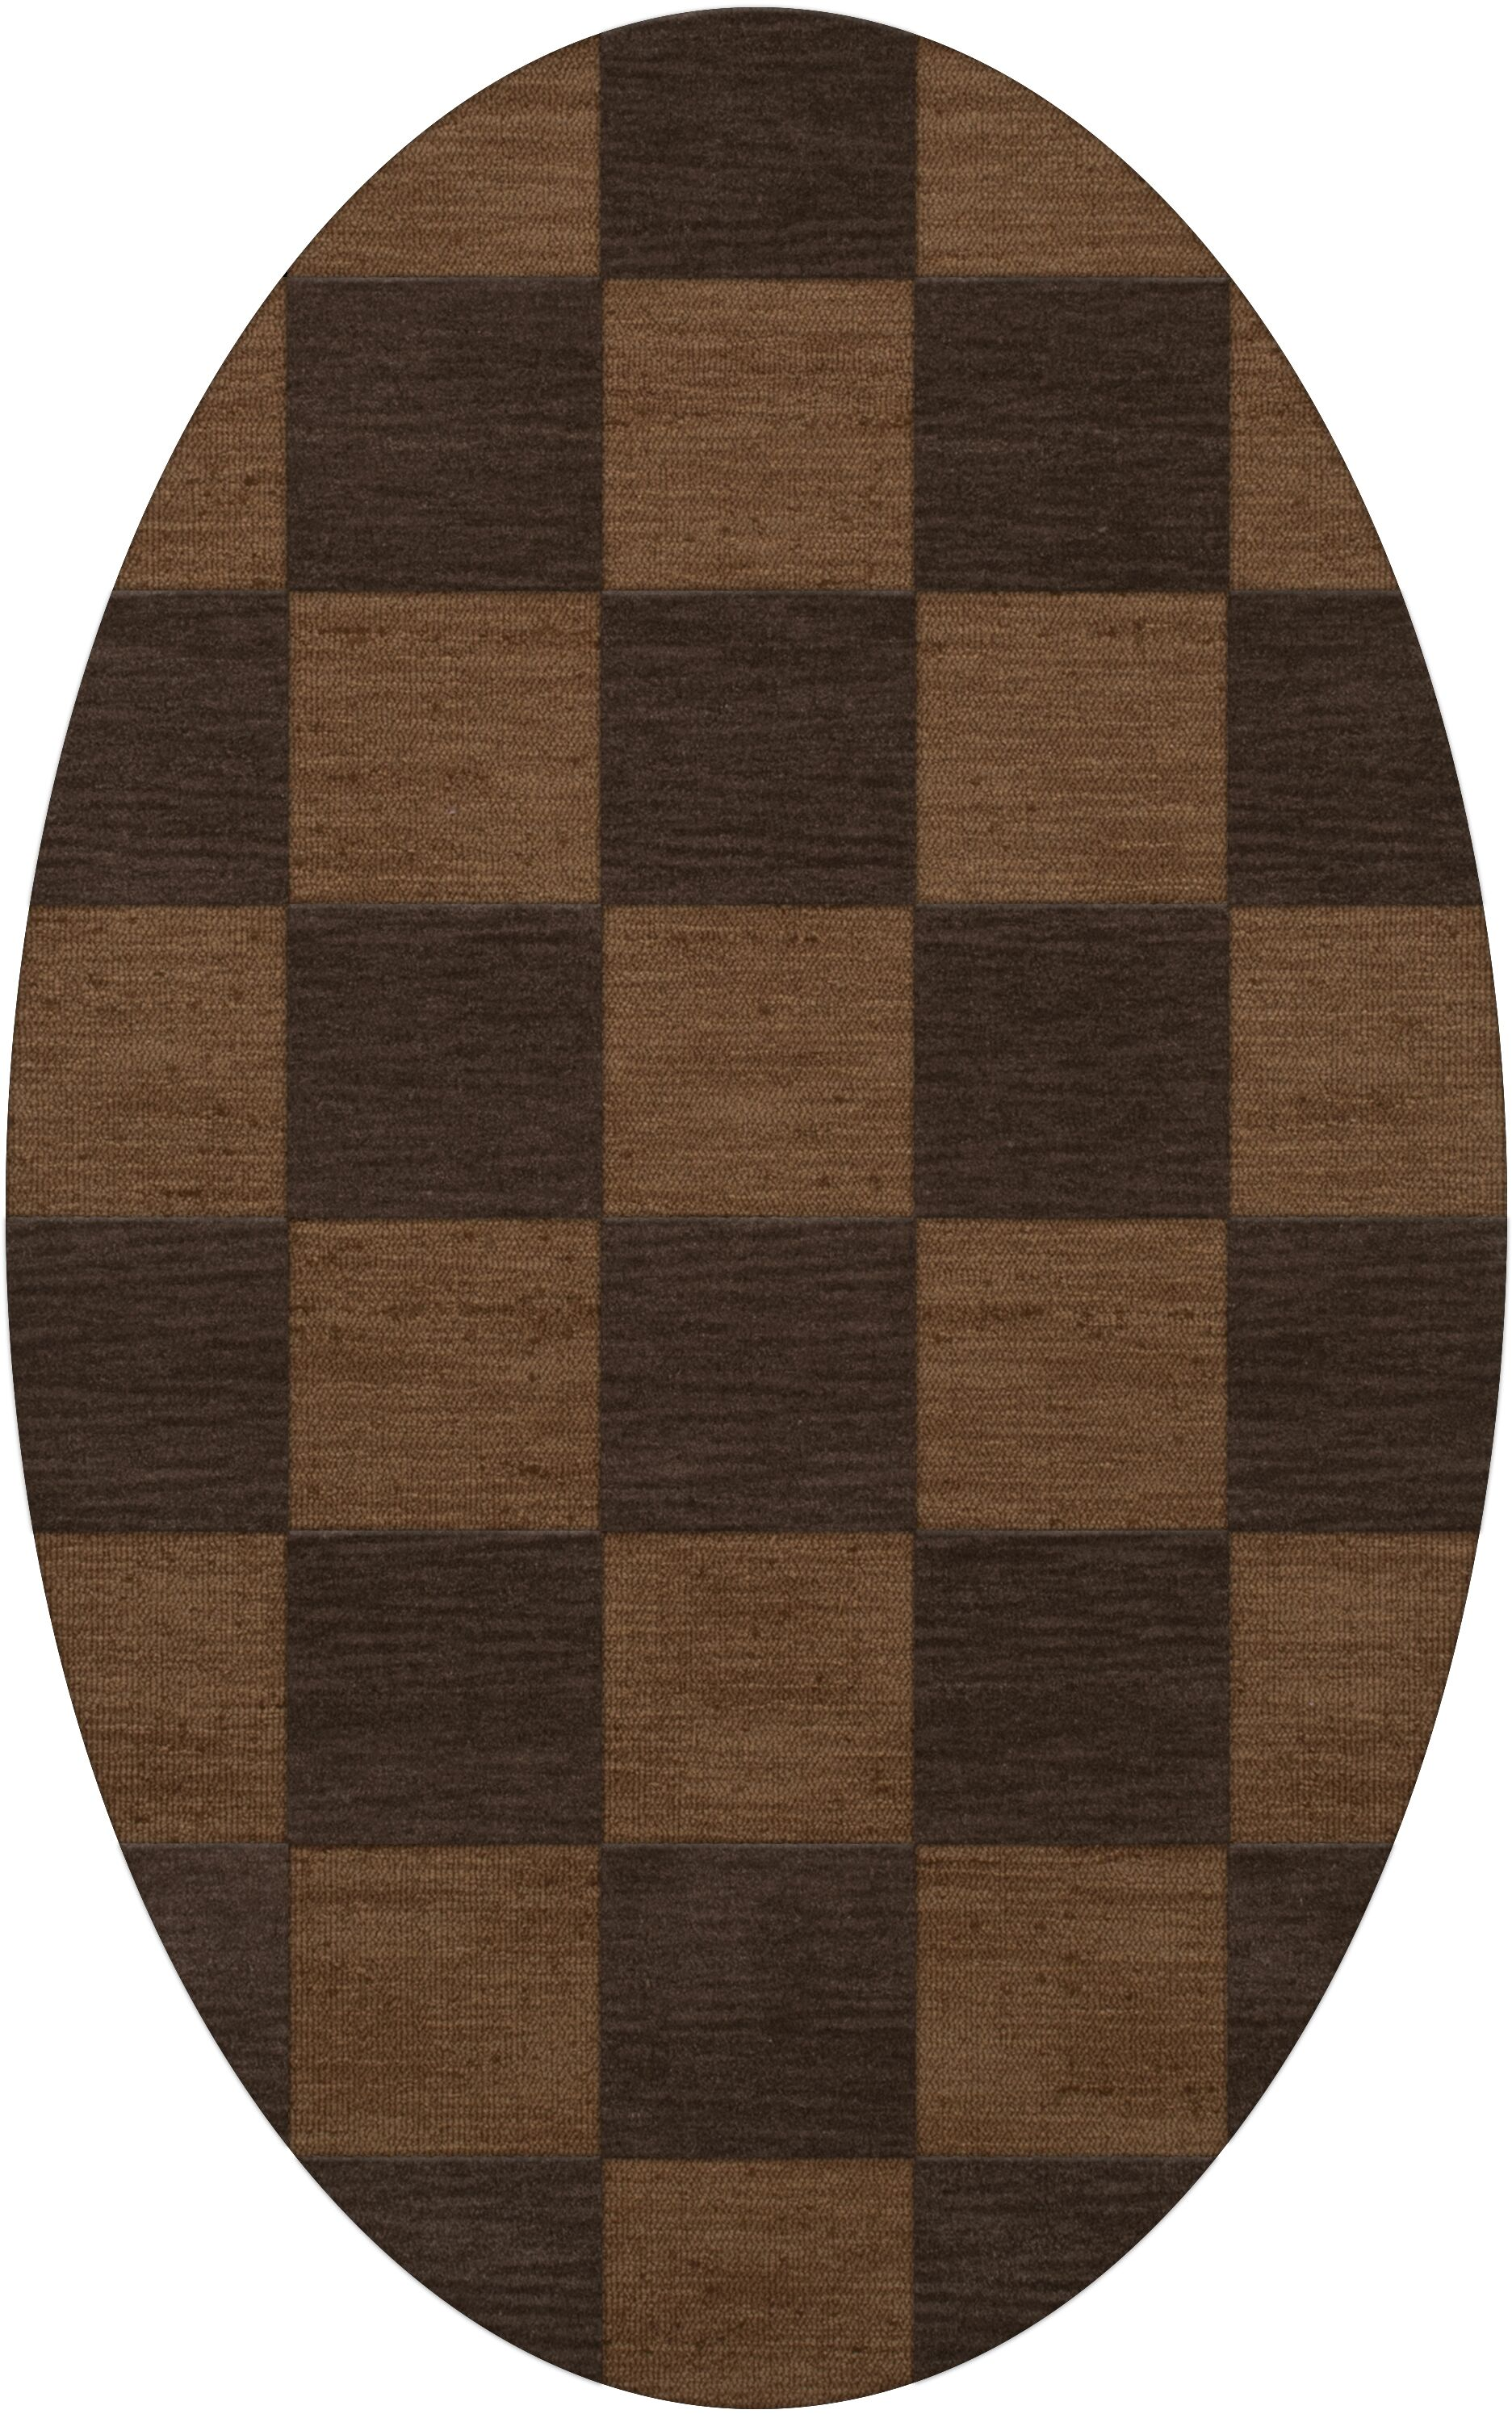 Dover Tufted Wool Caramel Area Rug Rug Size: Oval 10' x 14'